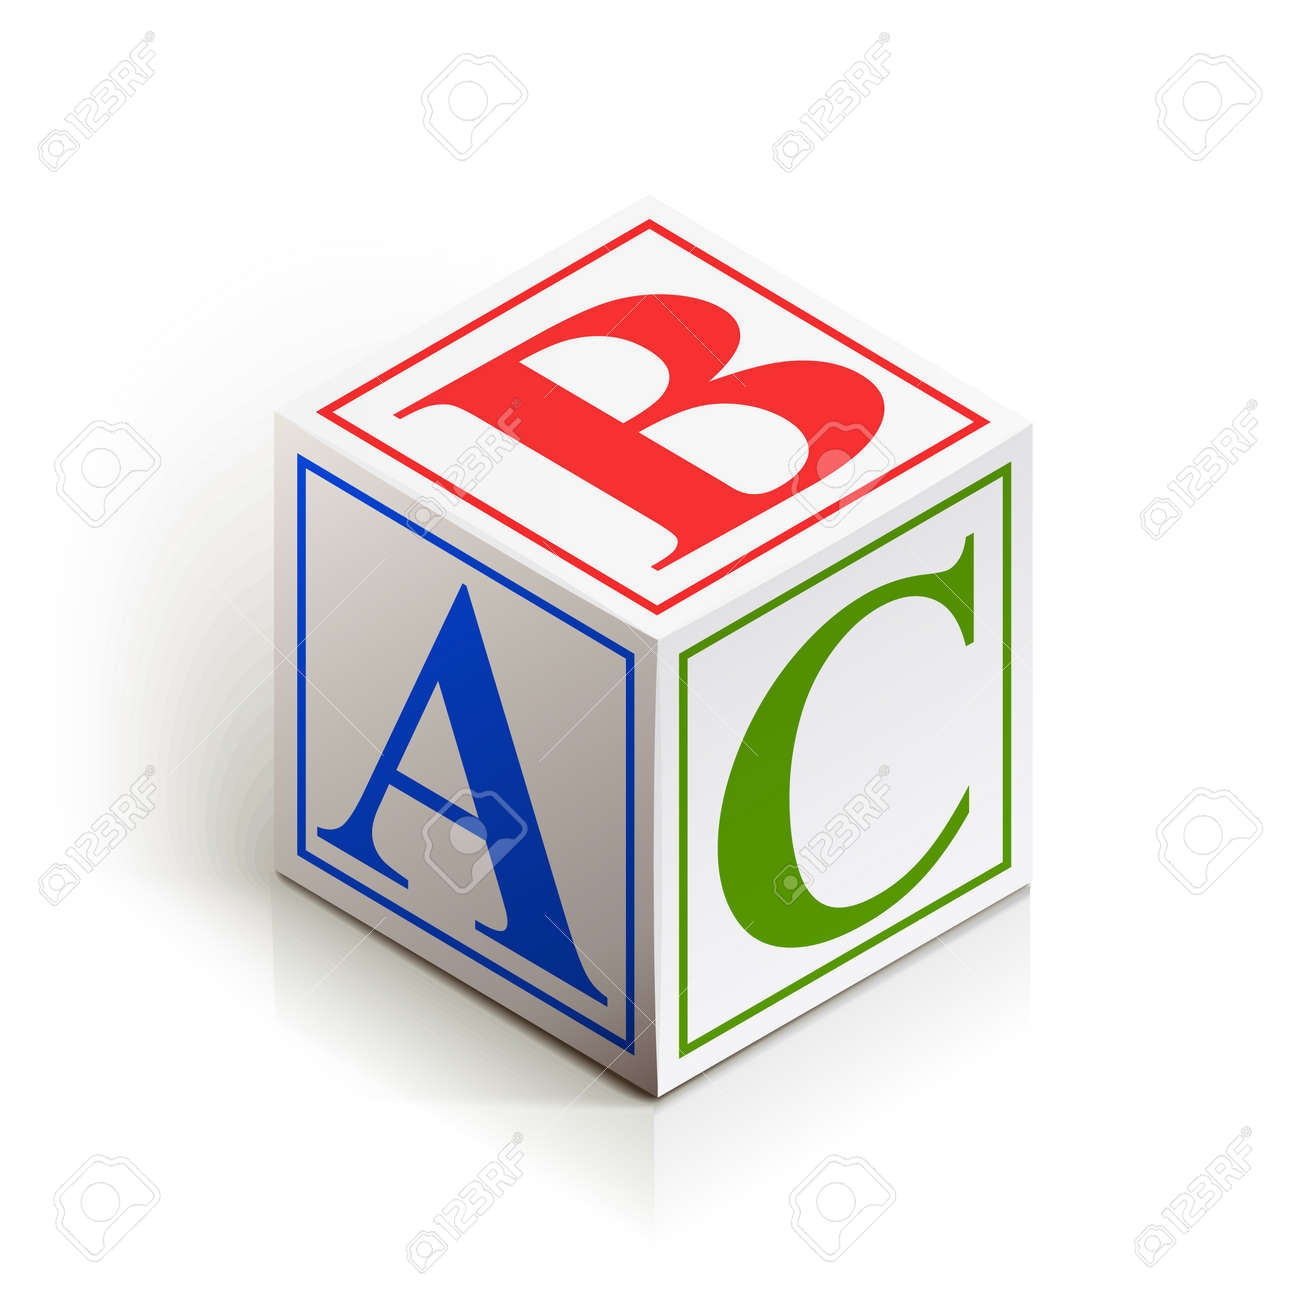 Abc Logo Transparent Vector - brick abc vector